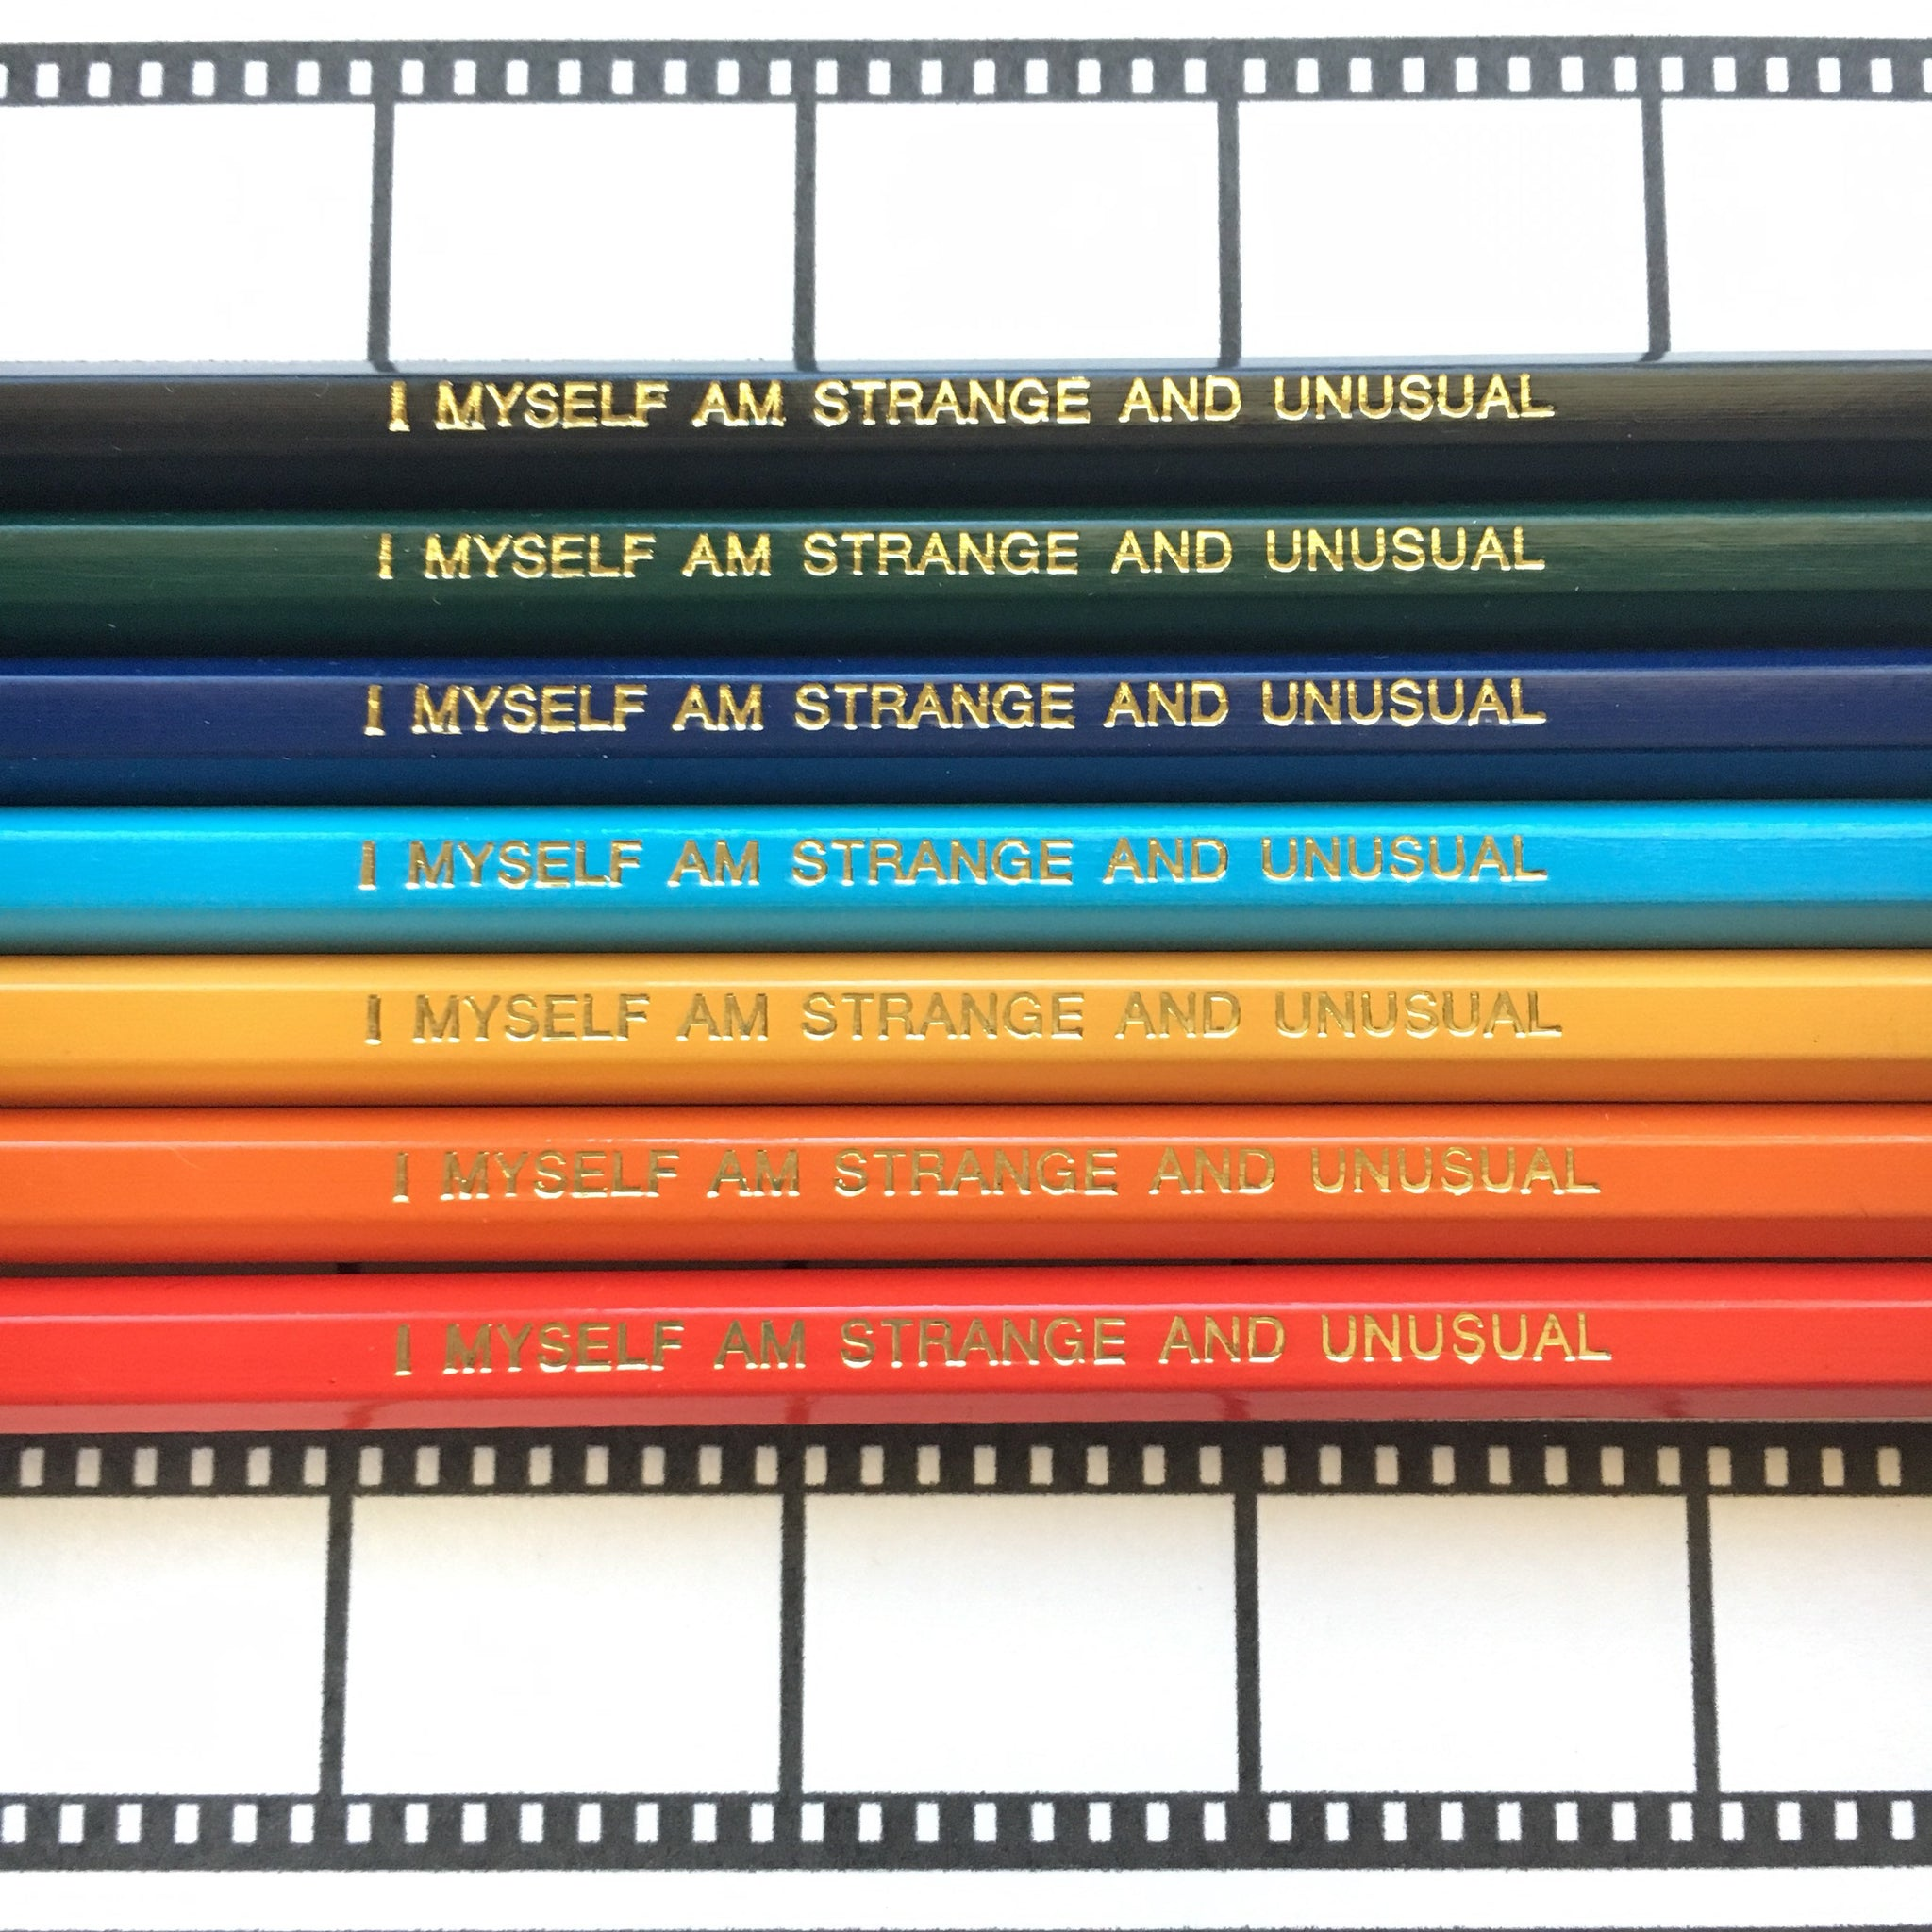 Beetlejuice 7 or 14 Pack of No 2 Pencils, I myself am strange and unusual